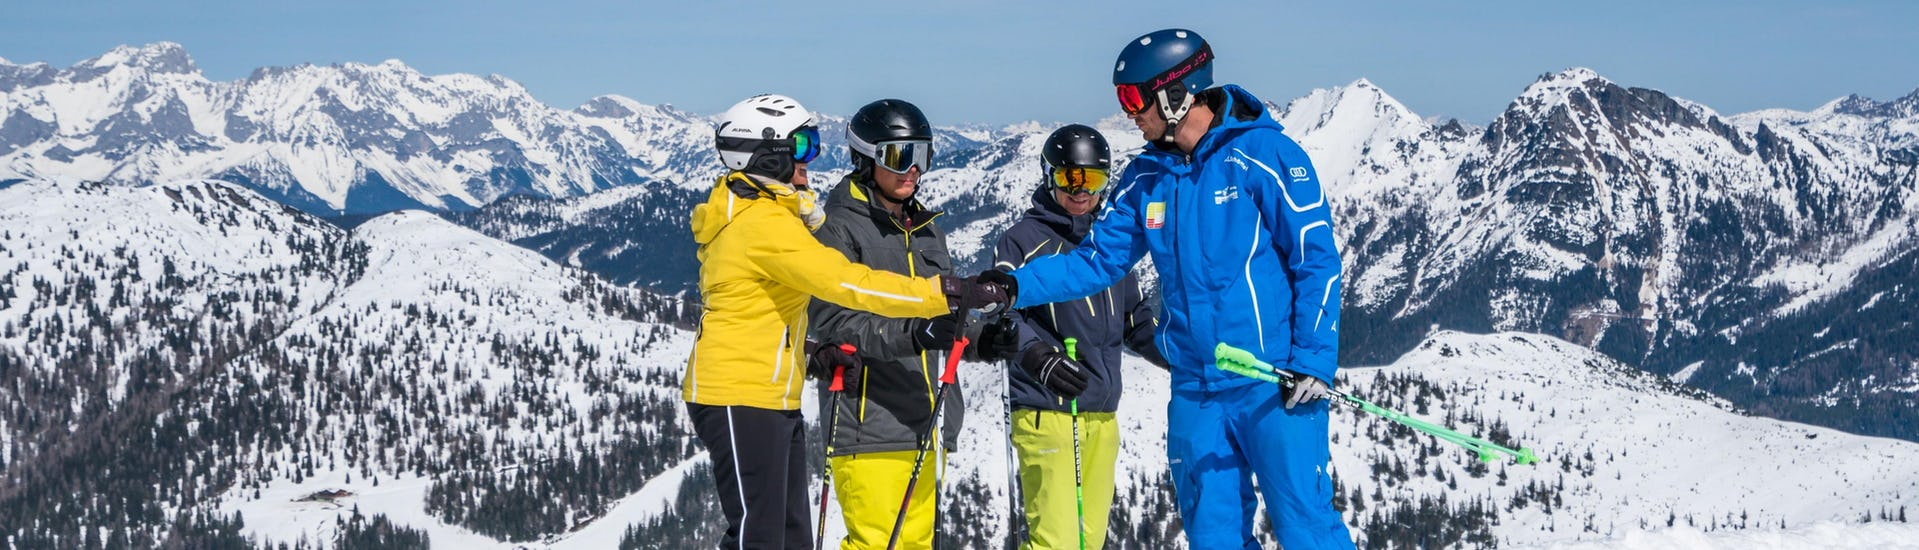 Ski Instructor Private for Adults - Carnival